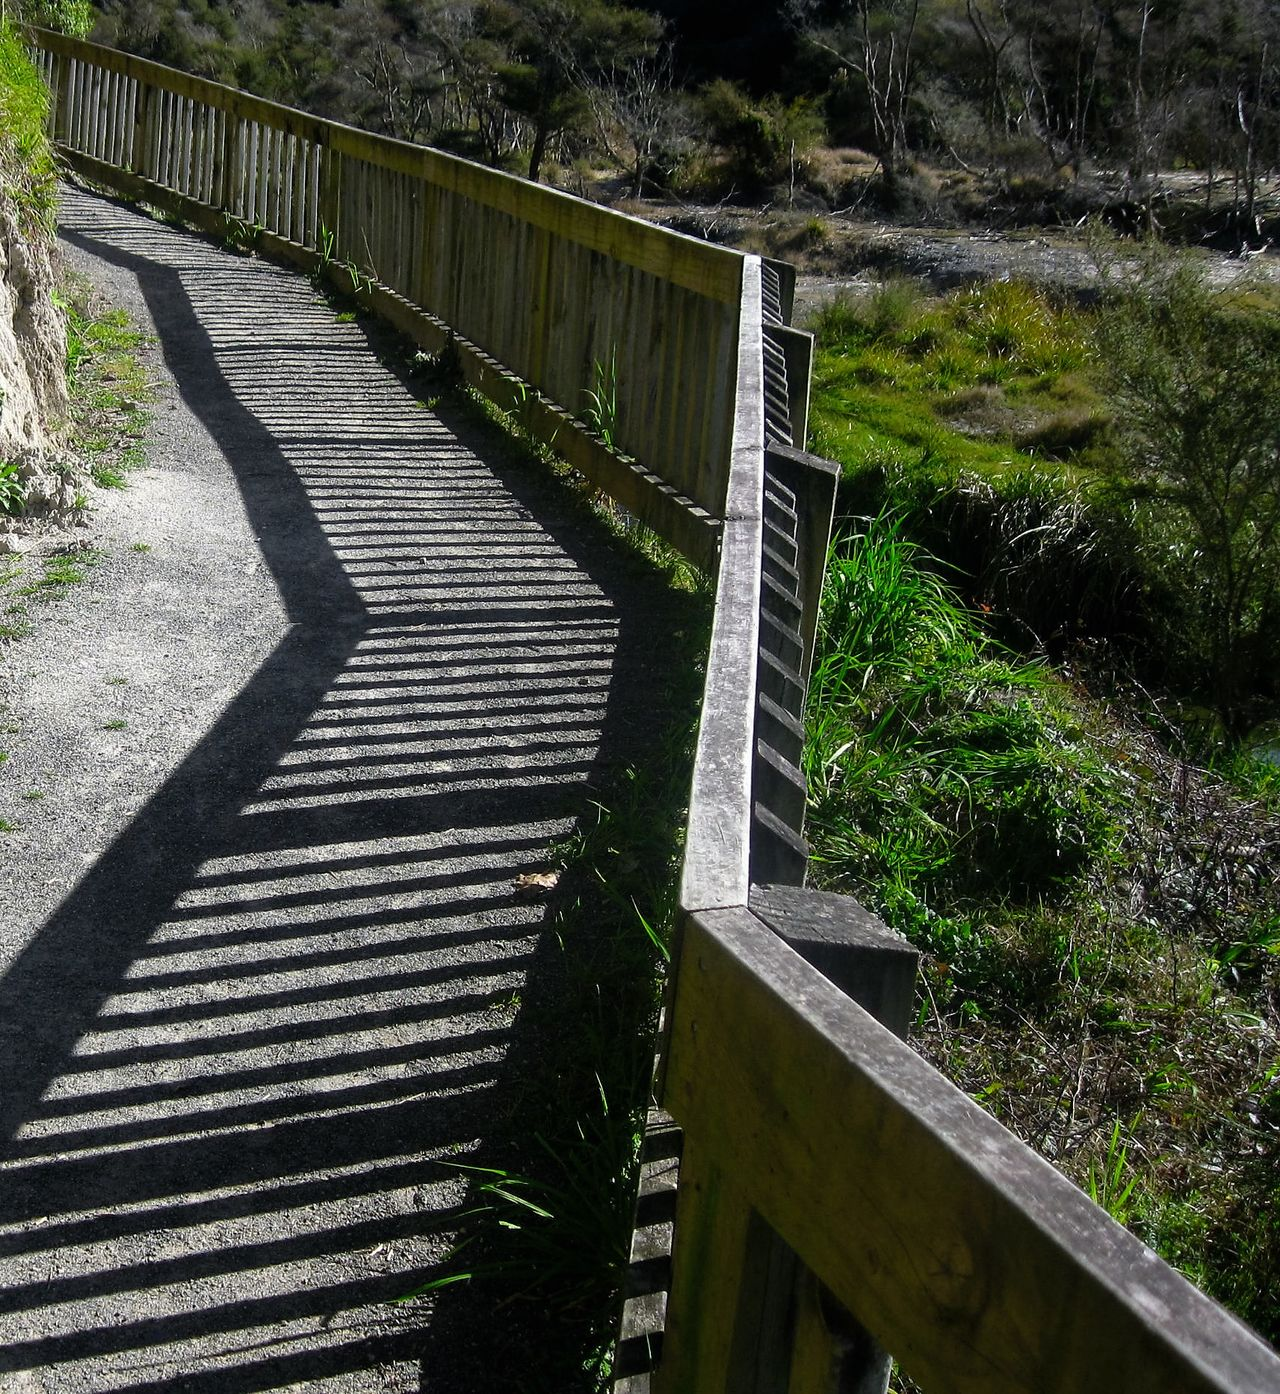 Striped shadows cast by the wooden fence laying a pattern on the walkway by the hillside Hill Light And Shadows Paris Shadows Striped Pattern The Way Forward Tranquility Tree Walkway Wooden Fence Wooden Railing